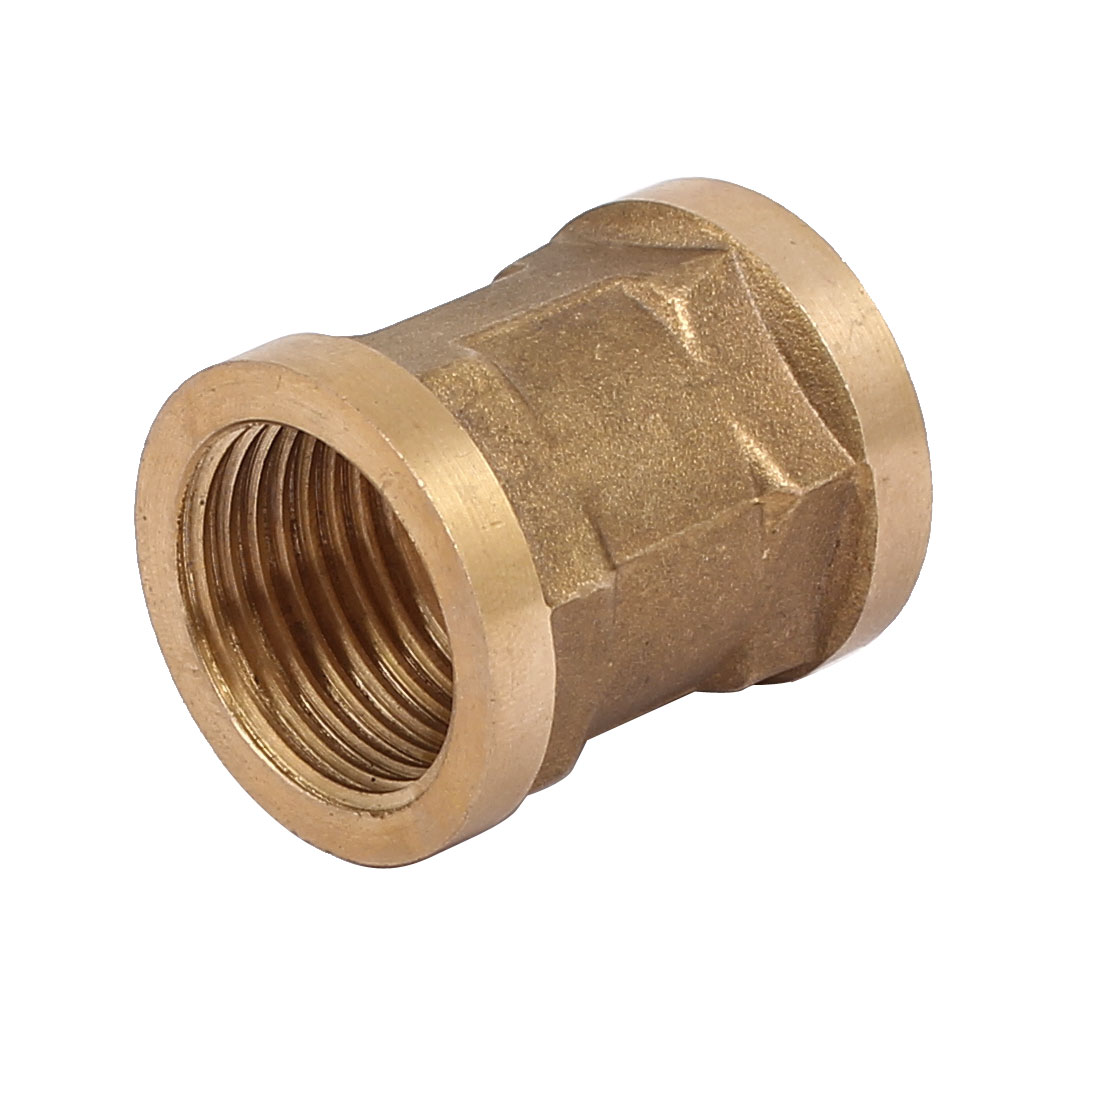 1/2BSP Female Thread Brass Straight Double Pass Connector Pipe Fitting Coupler - image 3 of 3